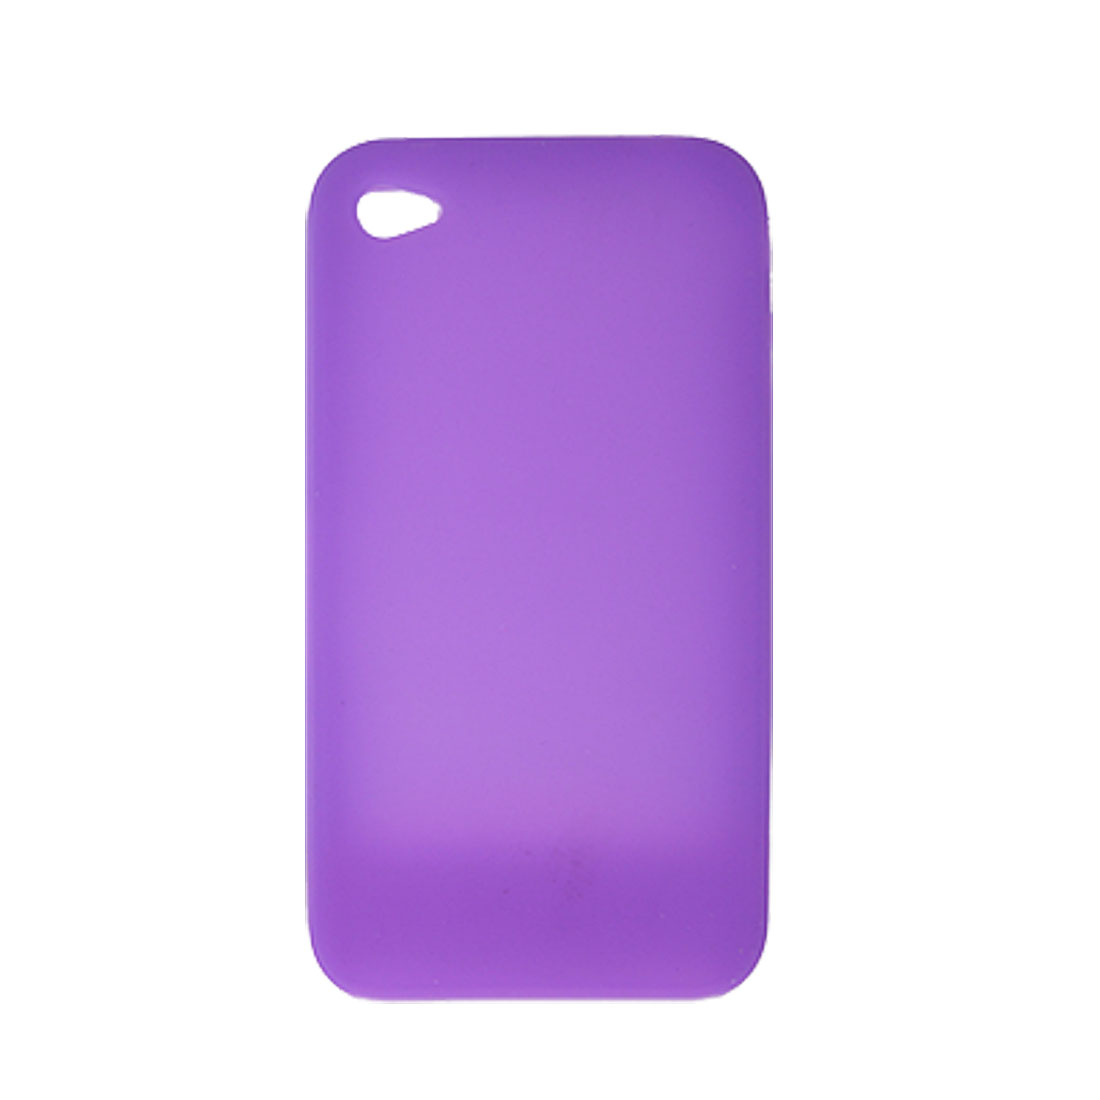 Purple Soft Silicone Pressing Button Skin Case for Apple iPhone 4 4G